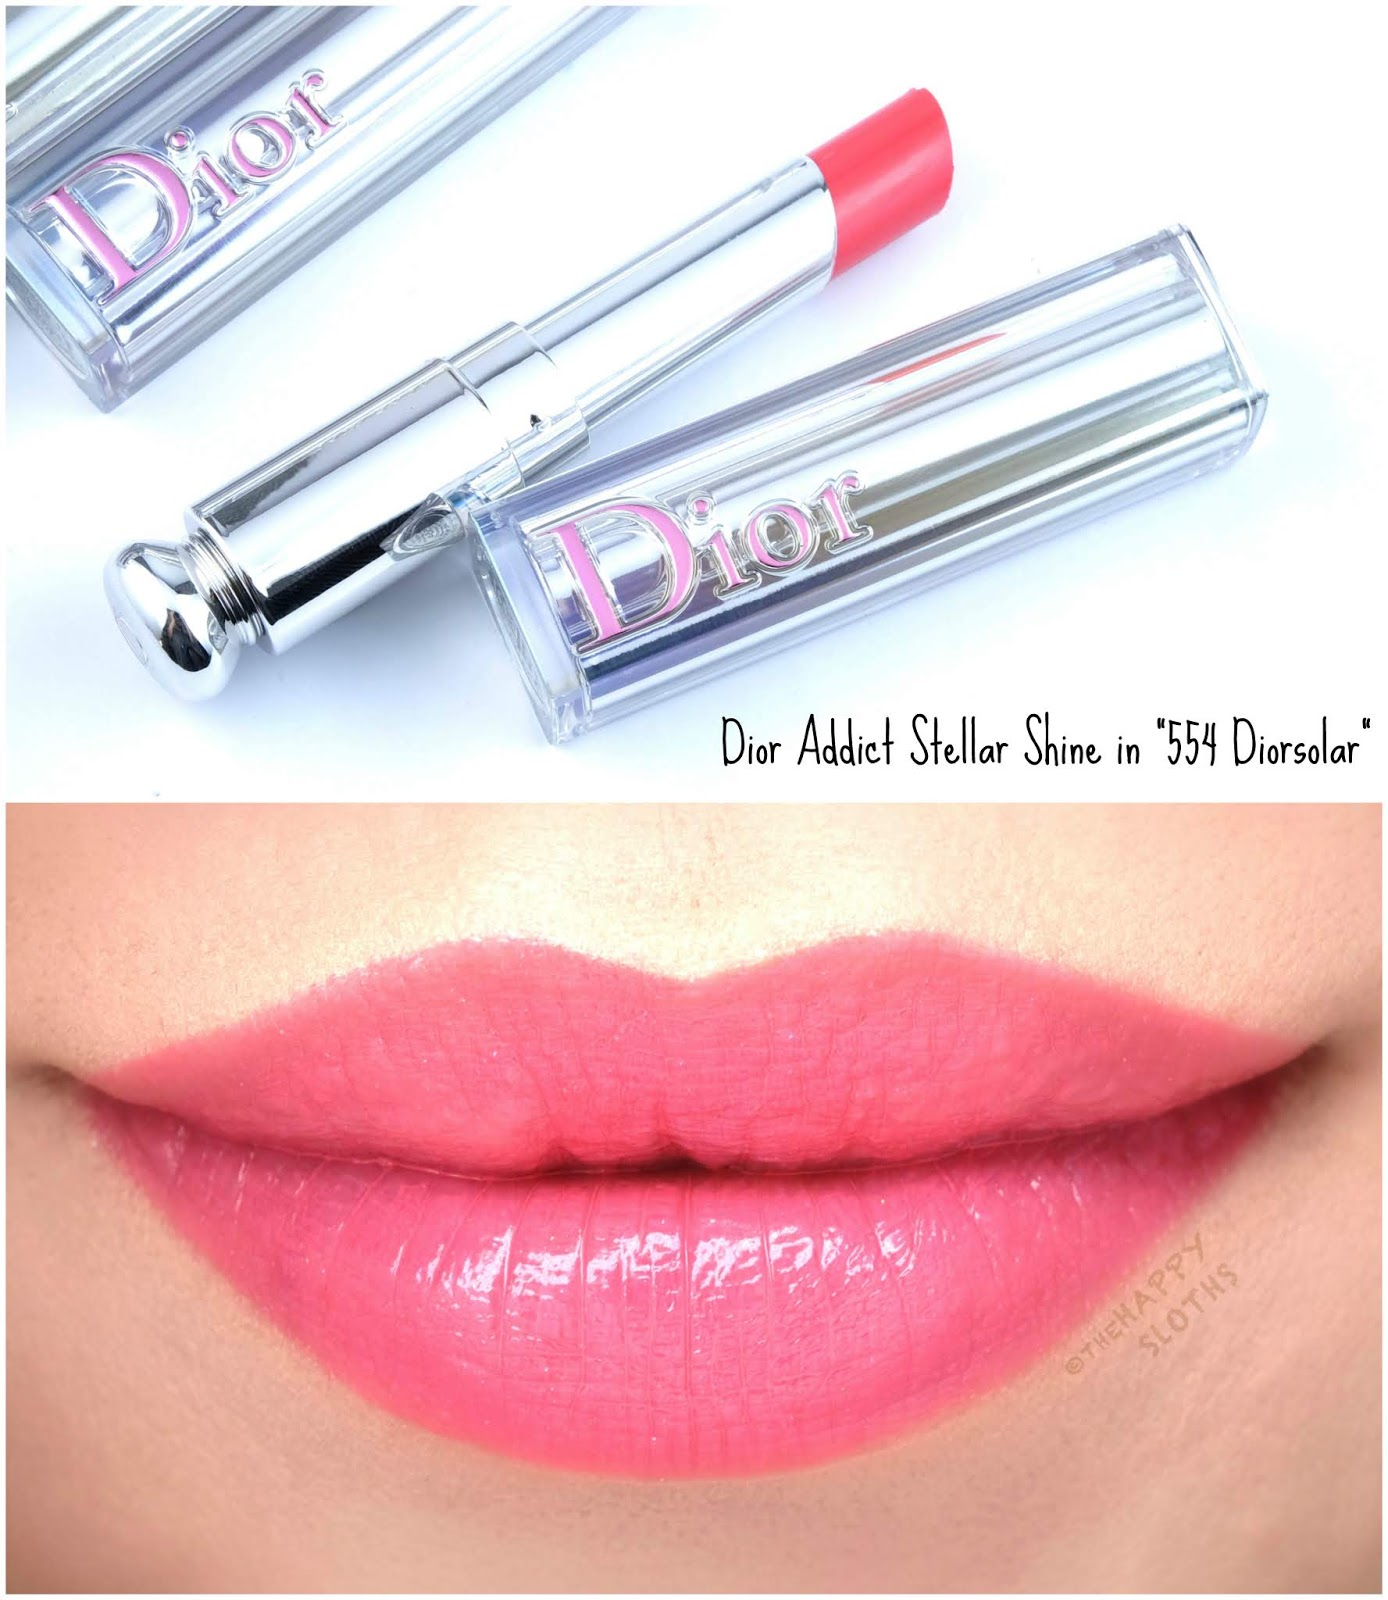 "Dior | Dior Addict Stellar Shine in ""554 Diorsolar"": Review and Swatches"